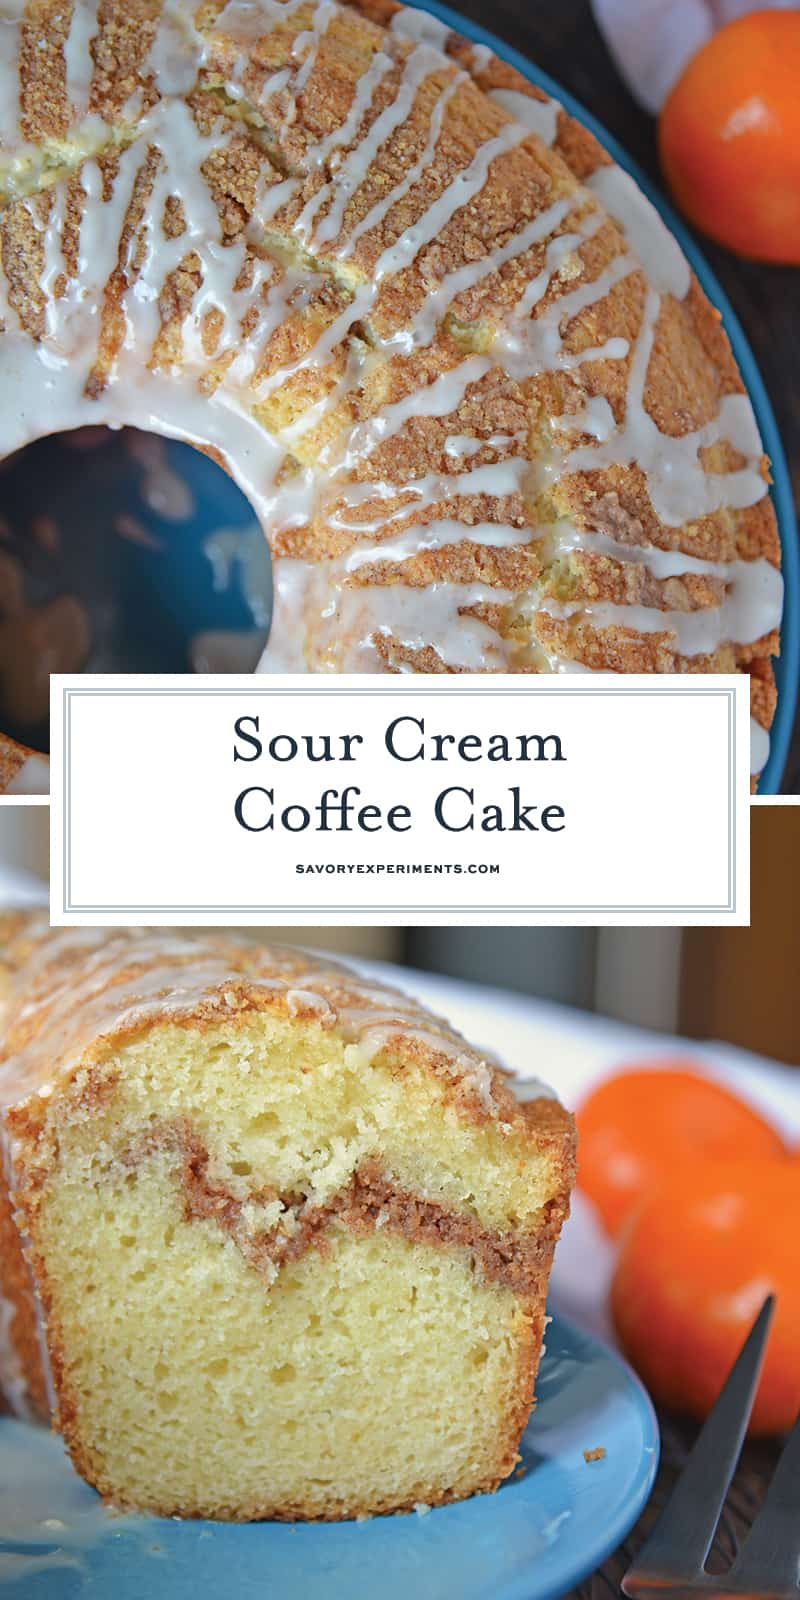 Sour Cream Coffee Cake is an easy coffee cake recipe with a streusel ribbon and crumb topping. Super moist without being overly sweet. Perfect for brunch or dessert. #sourcreamcoffeecake #easycoffeecakerecipe www.savoryexperiments.com